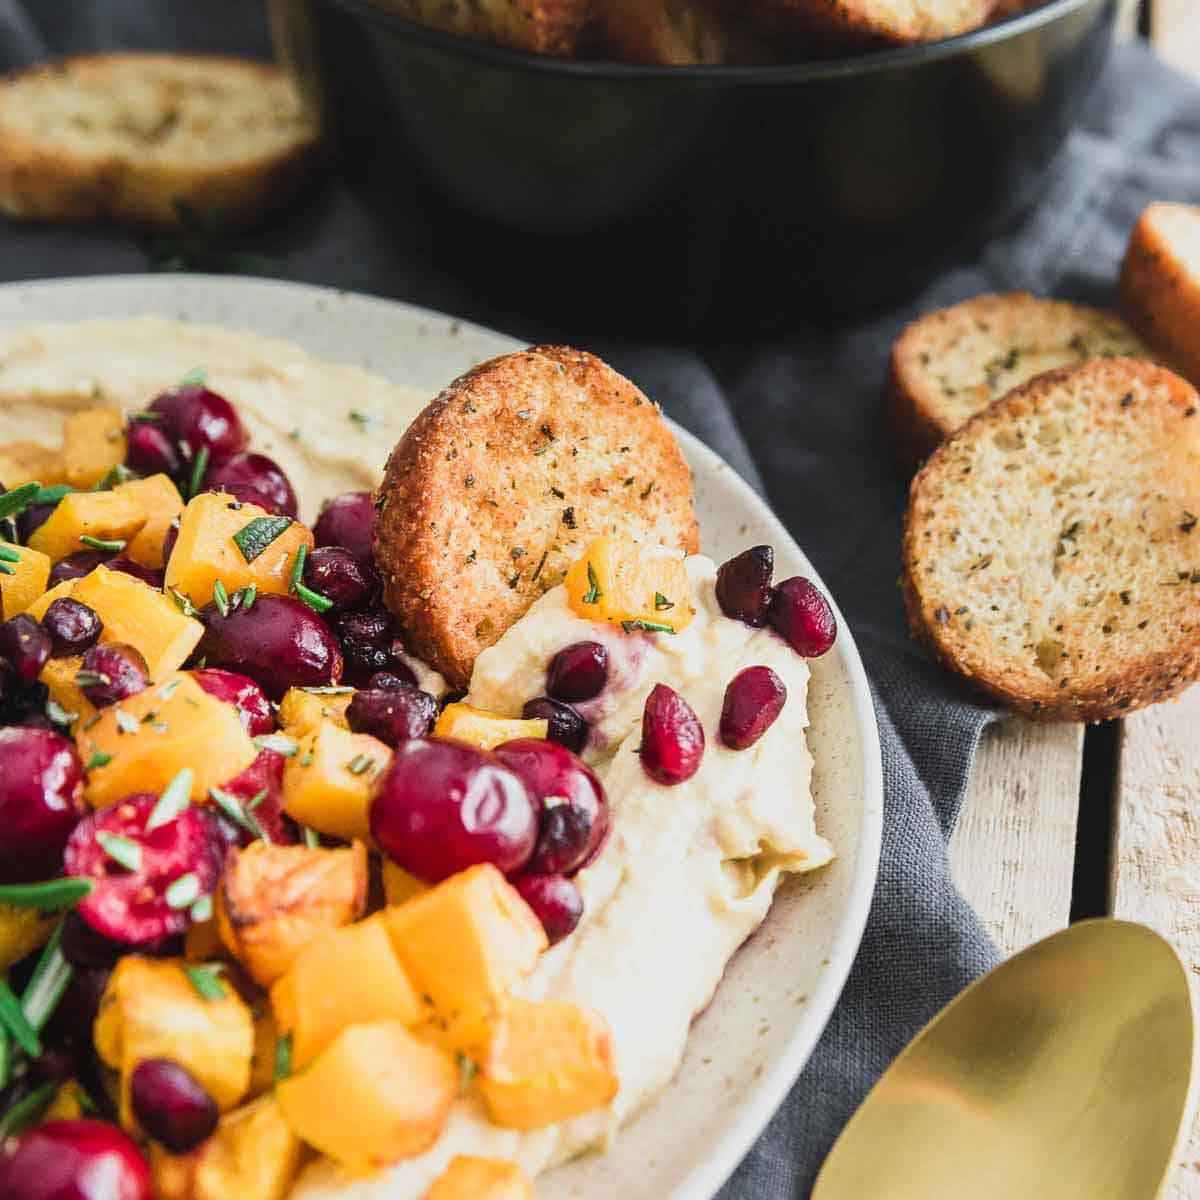 Impress your guests this season with holiday hummus featuring butternut squash, cranberries and pomegranates.